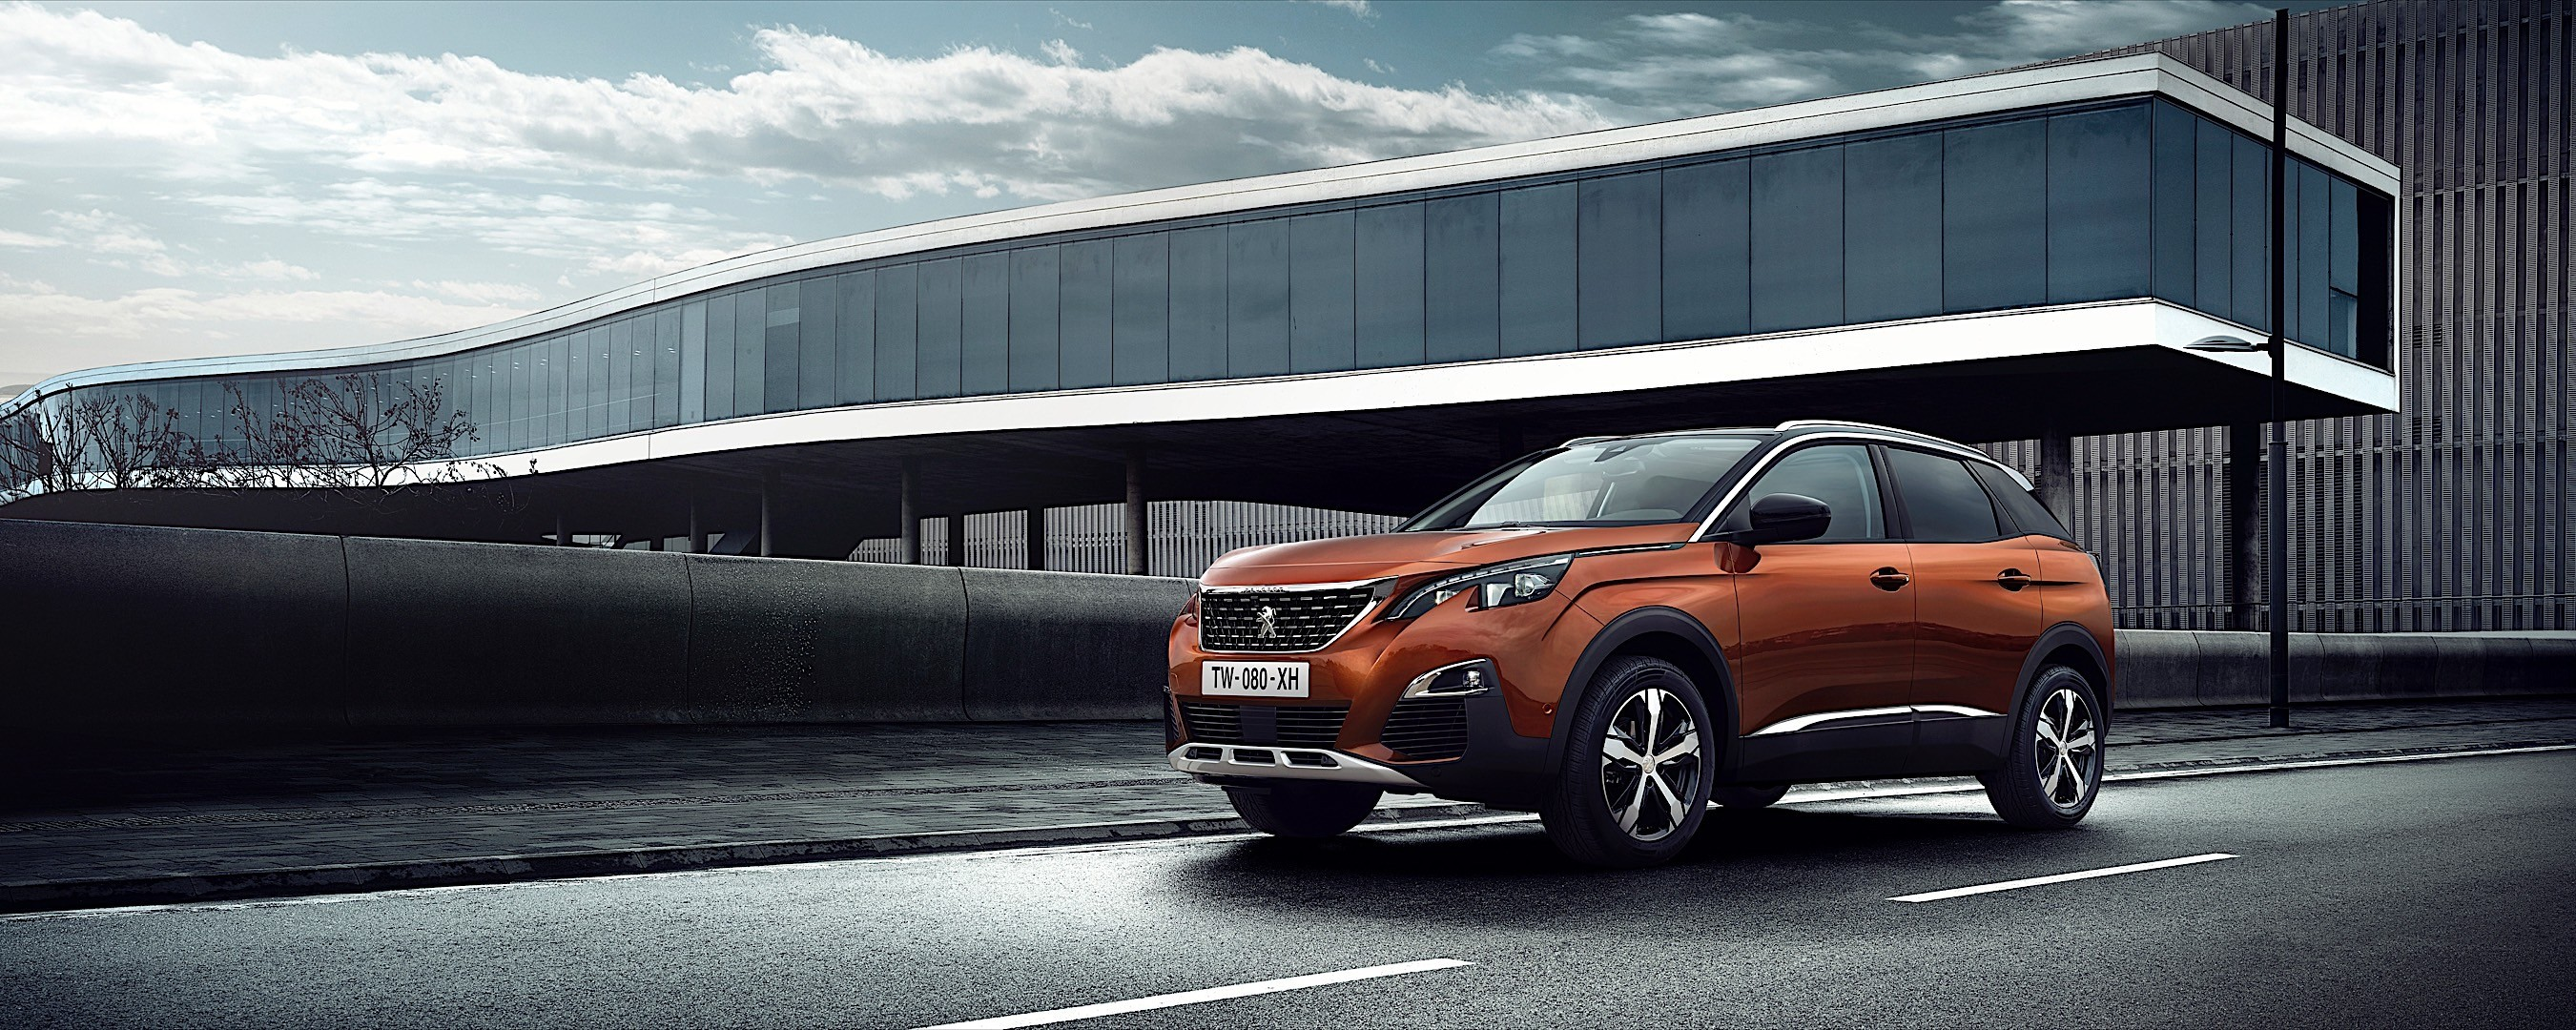 Peugeot to Manufacture 3008 in Malaysia - autoevolution